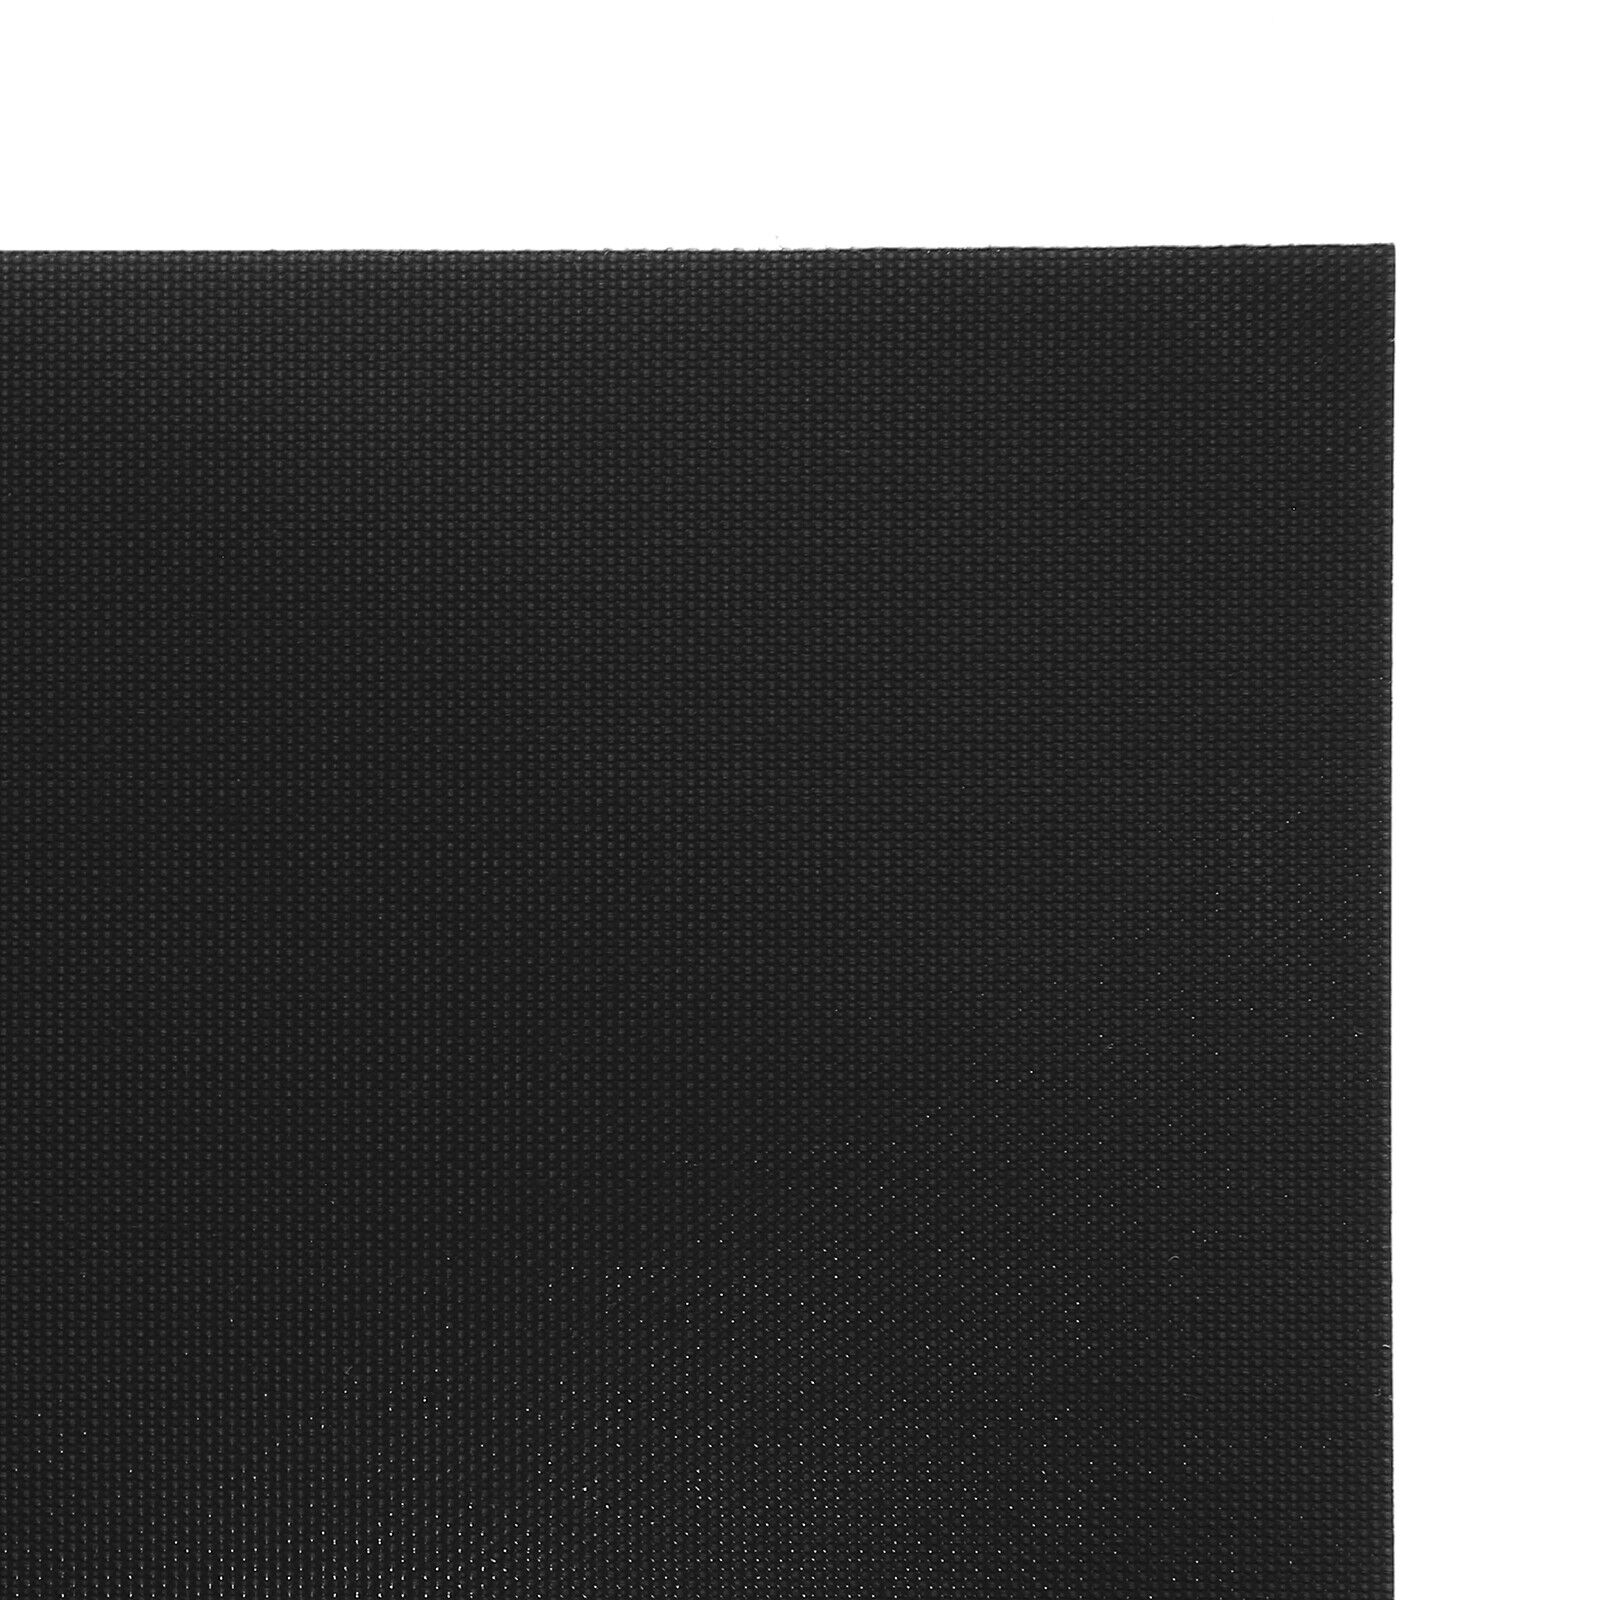 Pack of 2 Universal Stay Clean Oven Liner Non Stick 40x50 cm X2